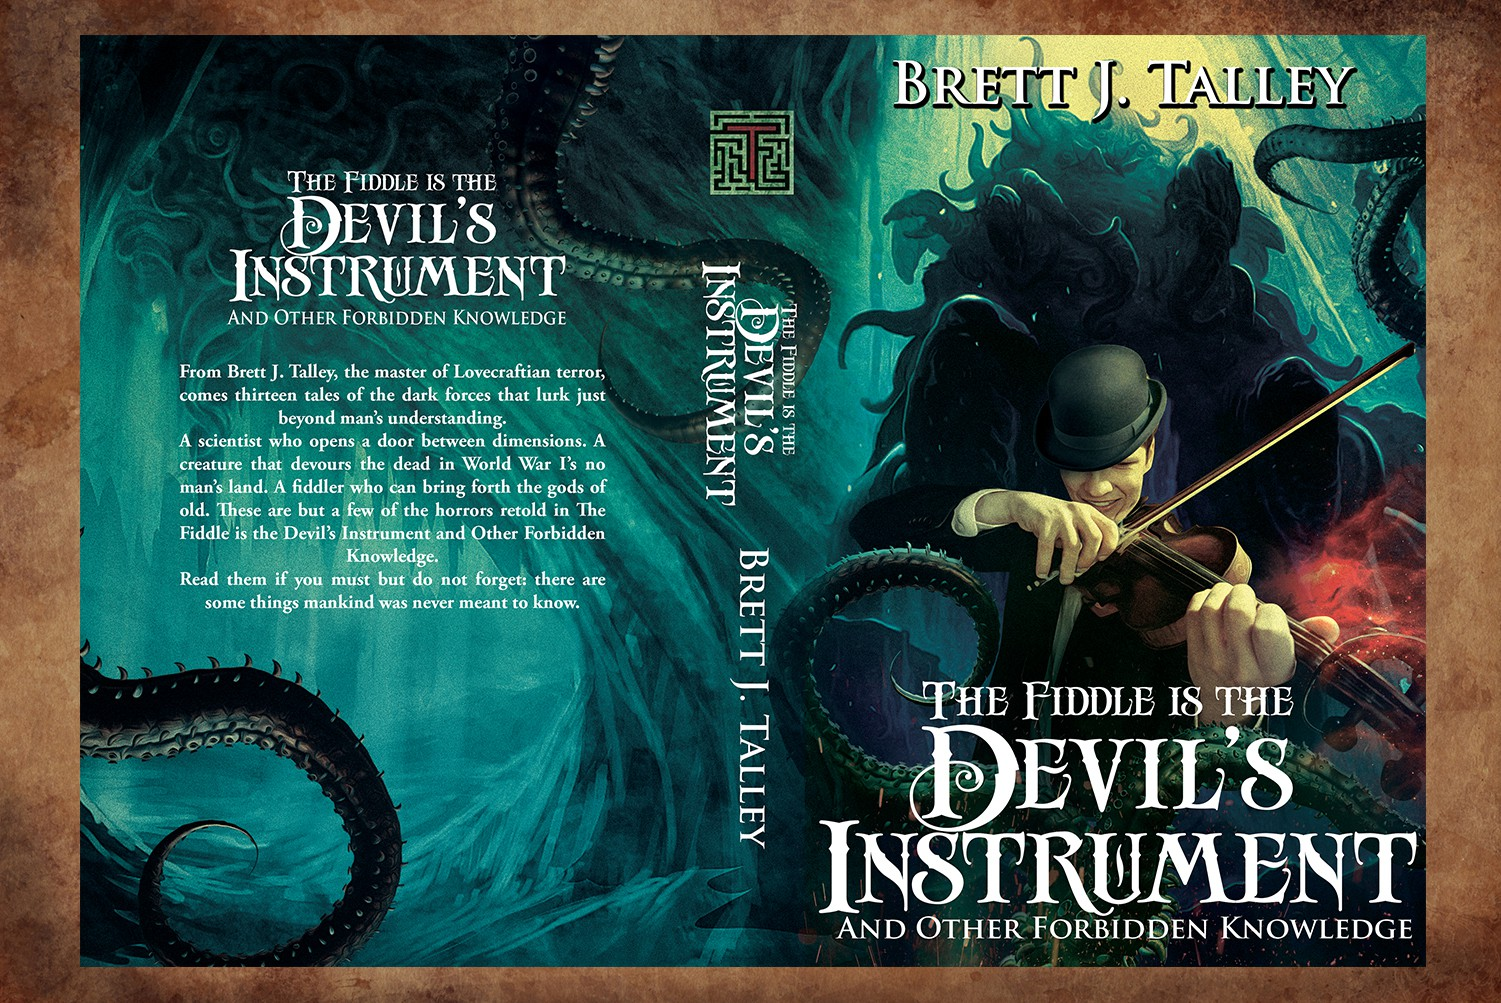 Cthulhu cover for HP Lovecraftian short story collection